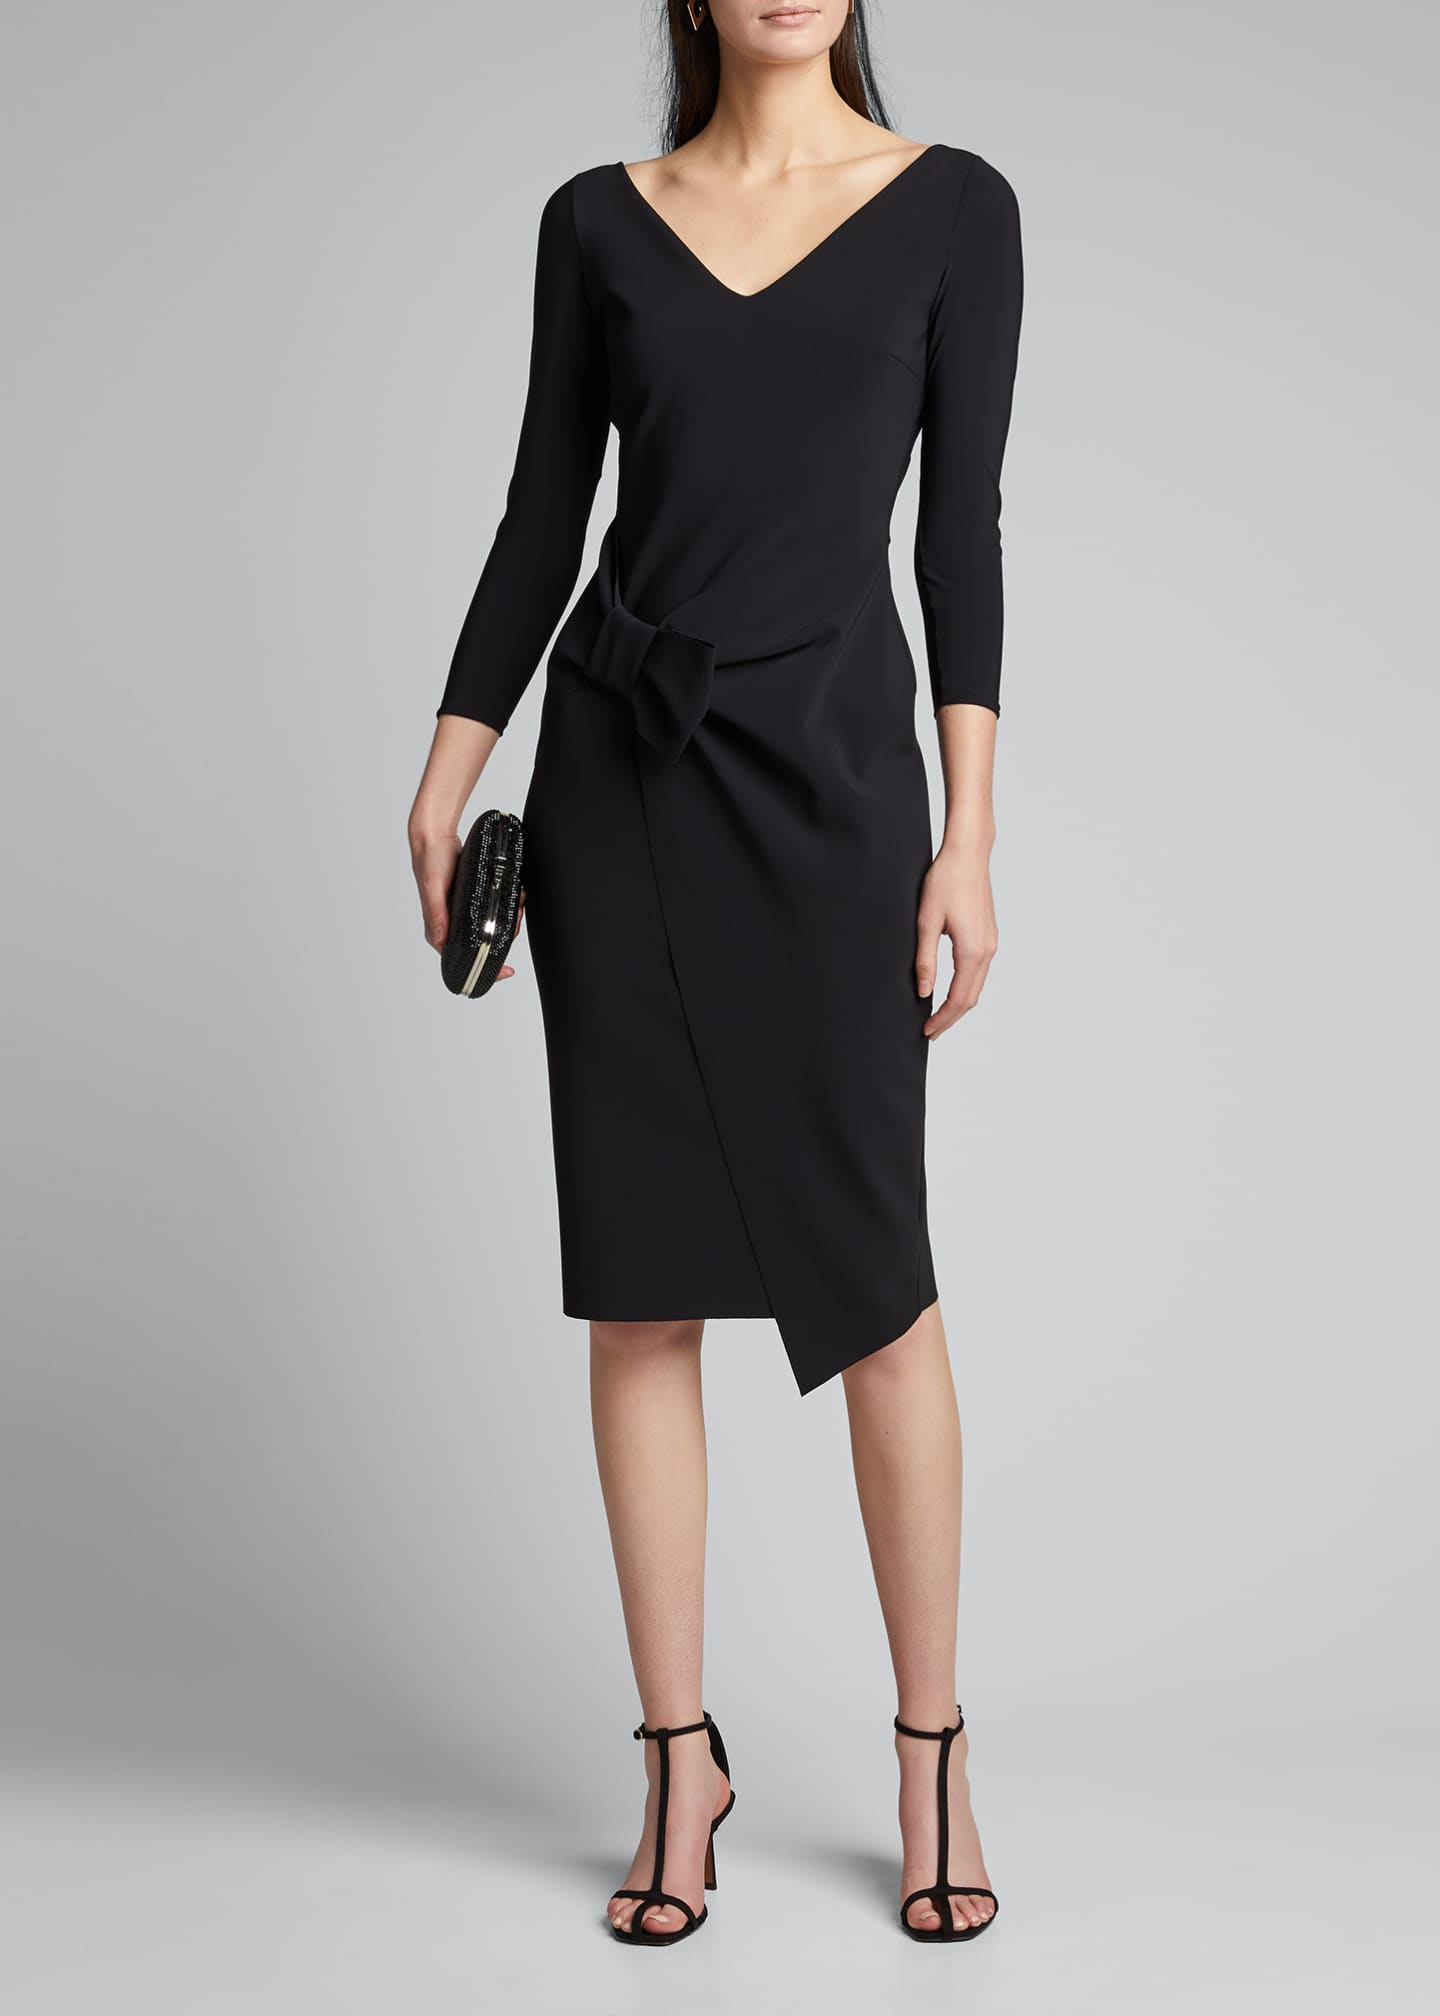 Image 1 of 5: Sotiria V-Neck Jersey Sheath Dress